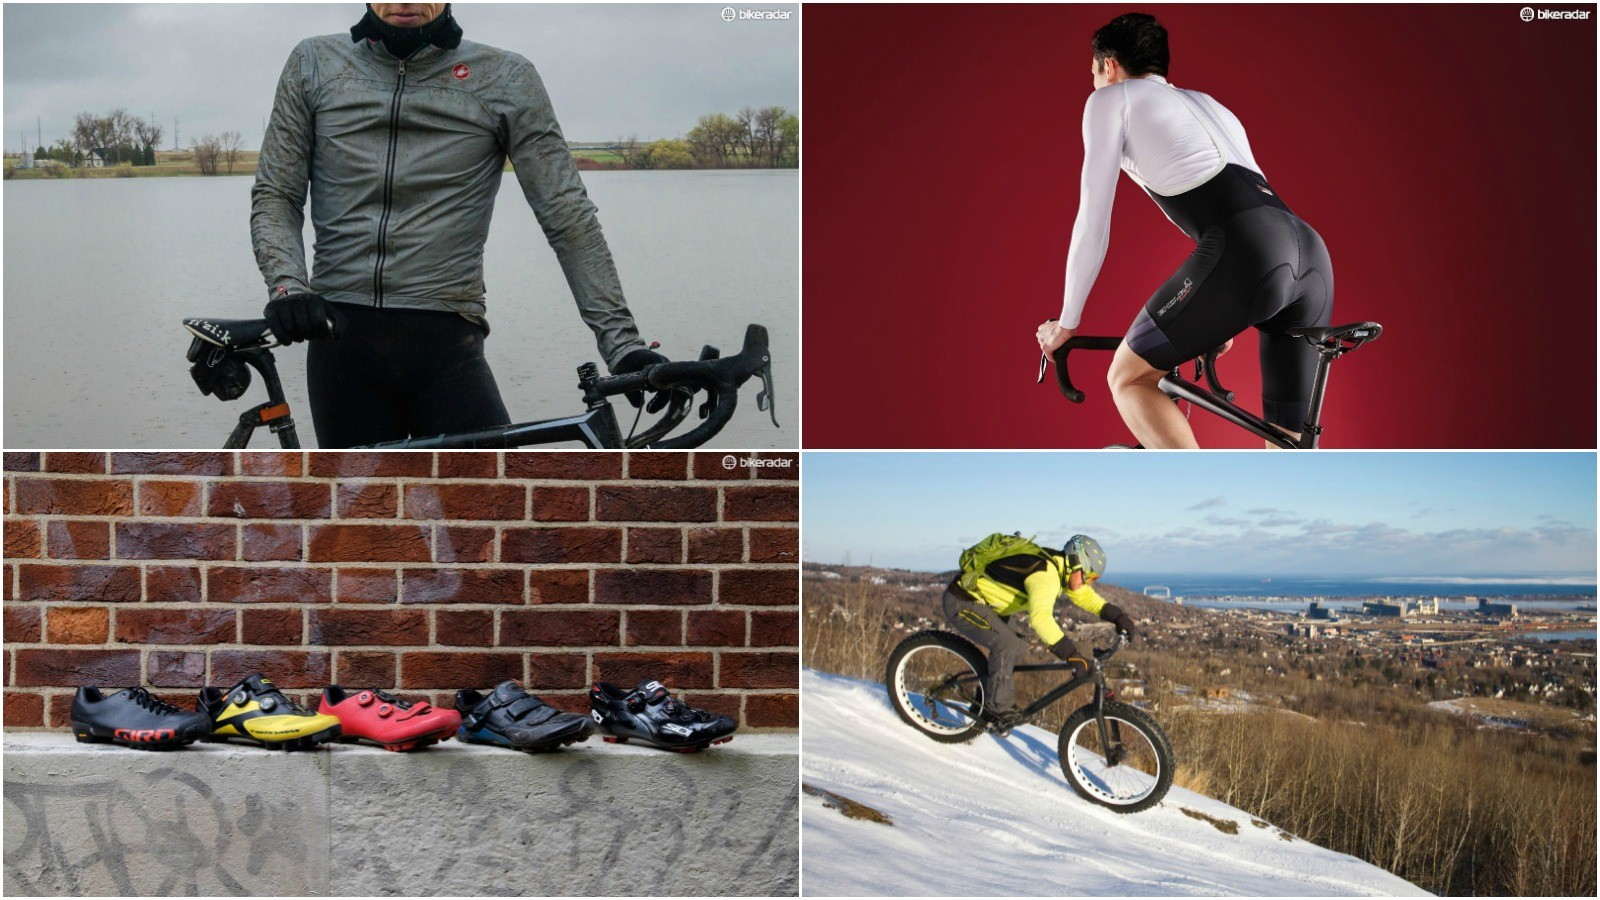 We look at some of the best bike clothing on the market today